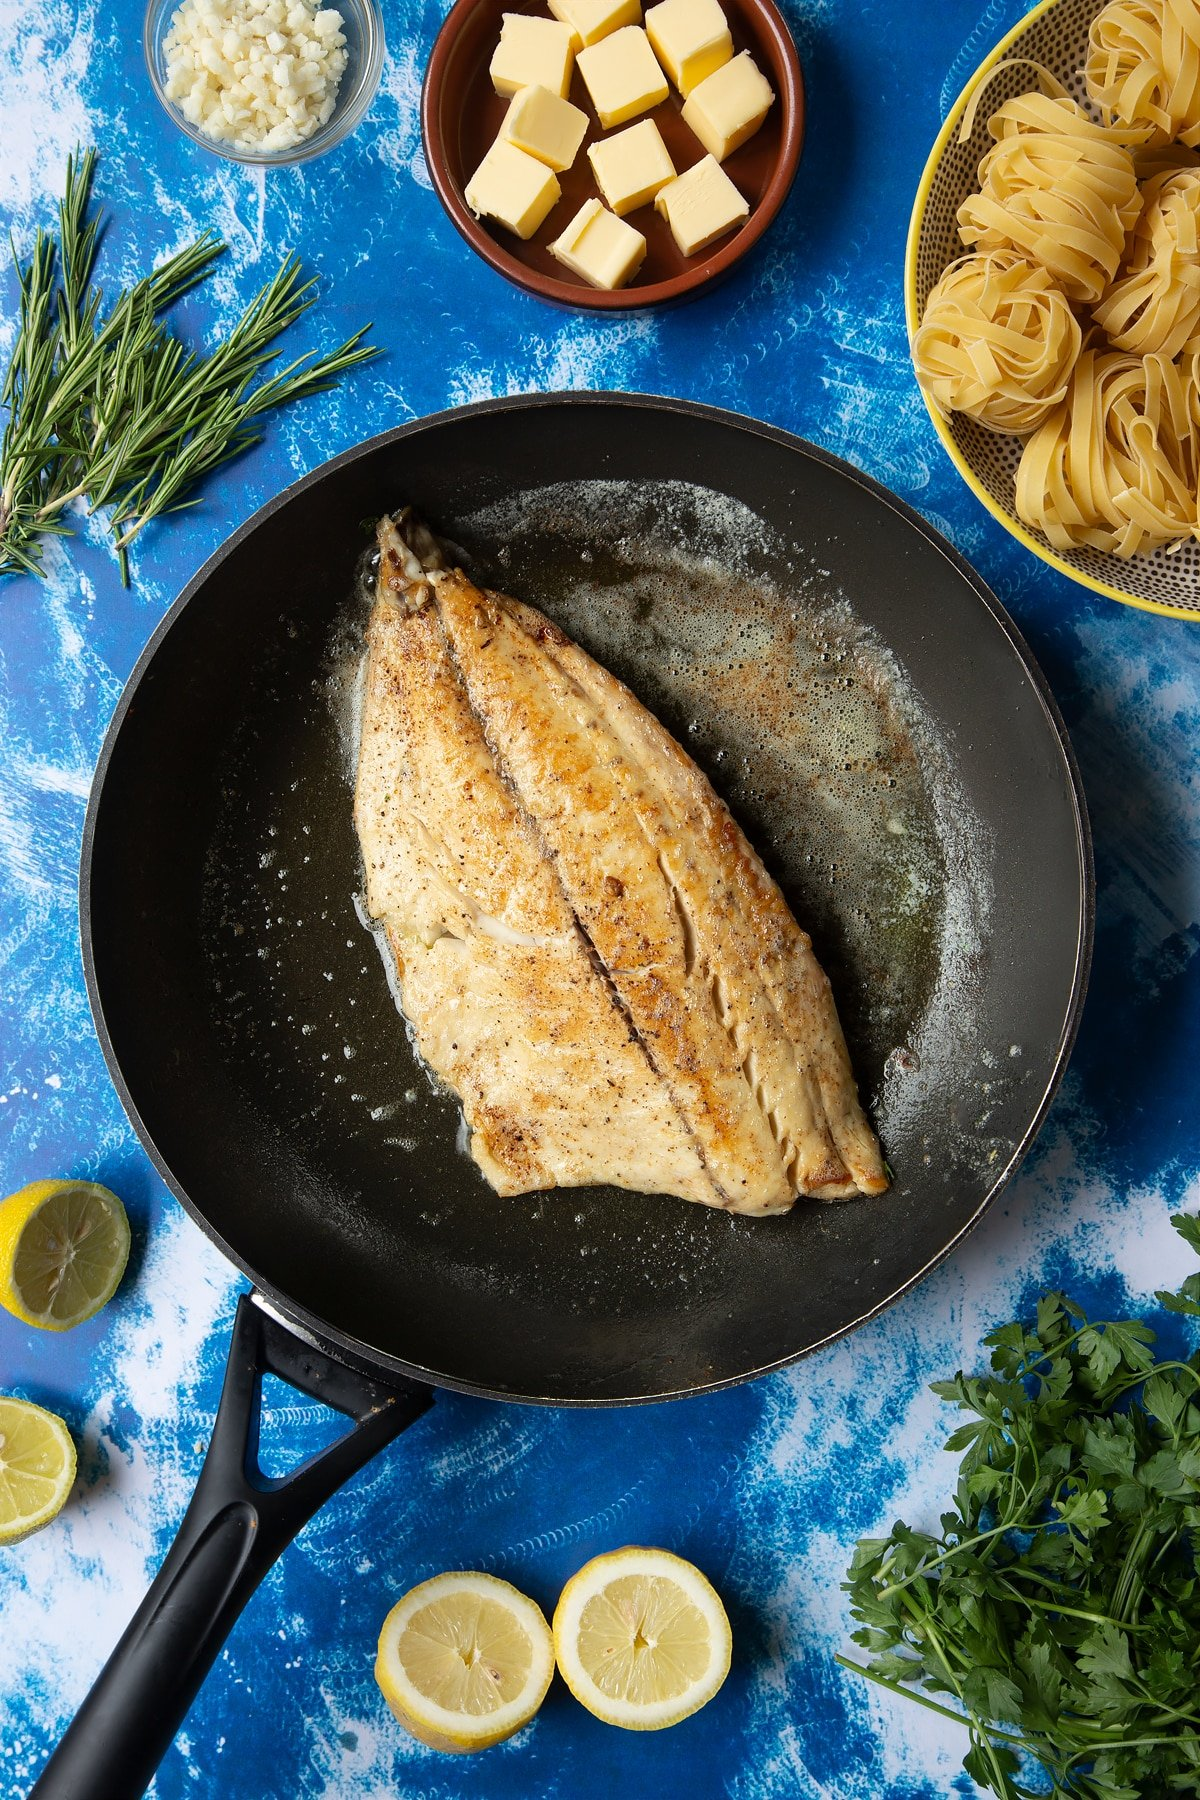 A large frying pan with melted butter and a fish fillet, skin side down. The fillet is cooked and lightly golden. Ingredients to make Dutch Yellowtail tagliatelle surround the pan.